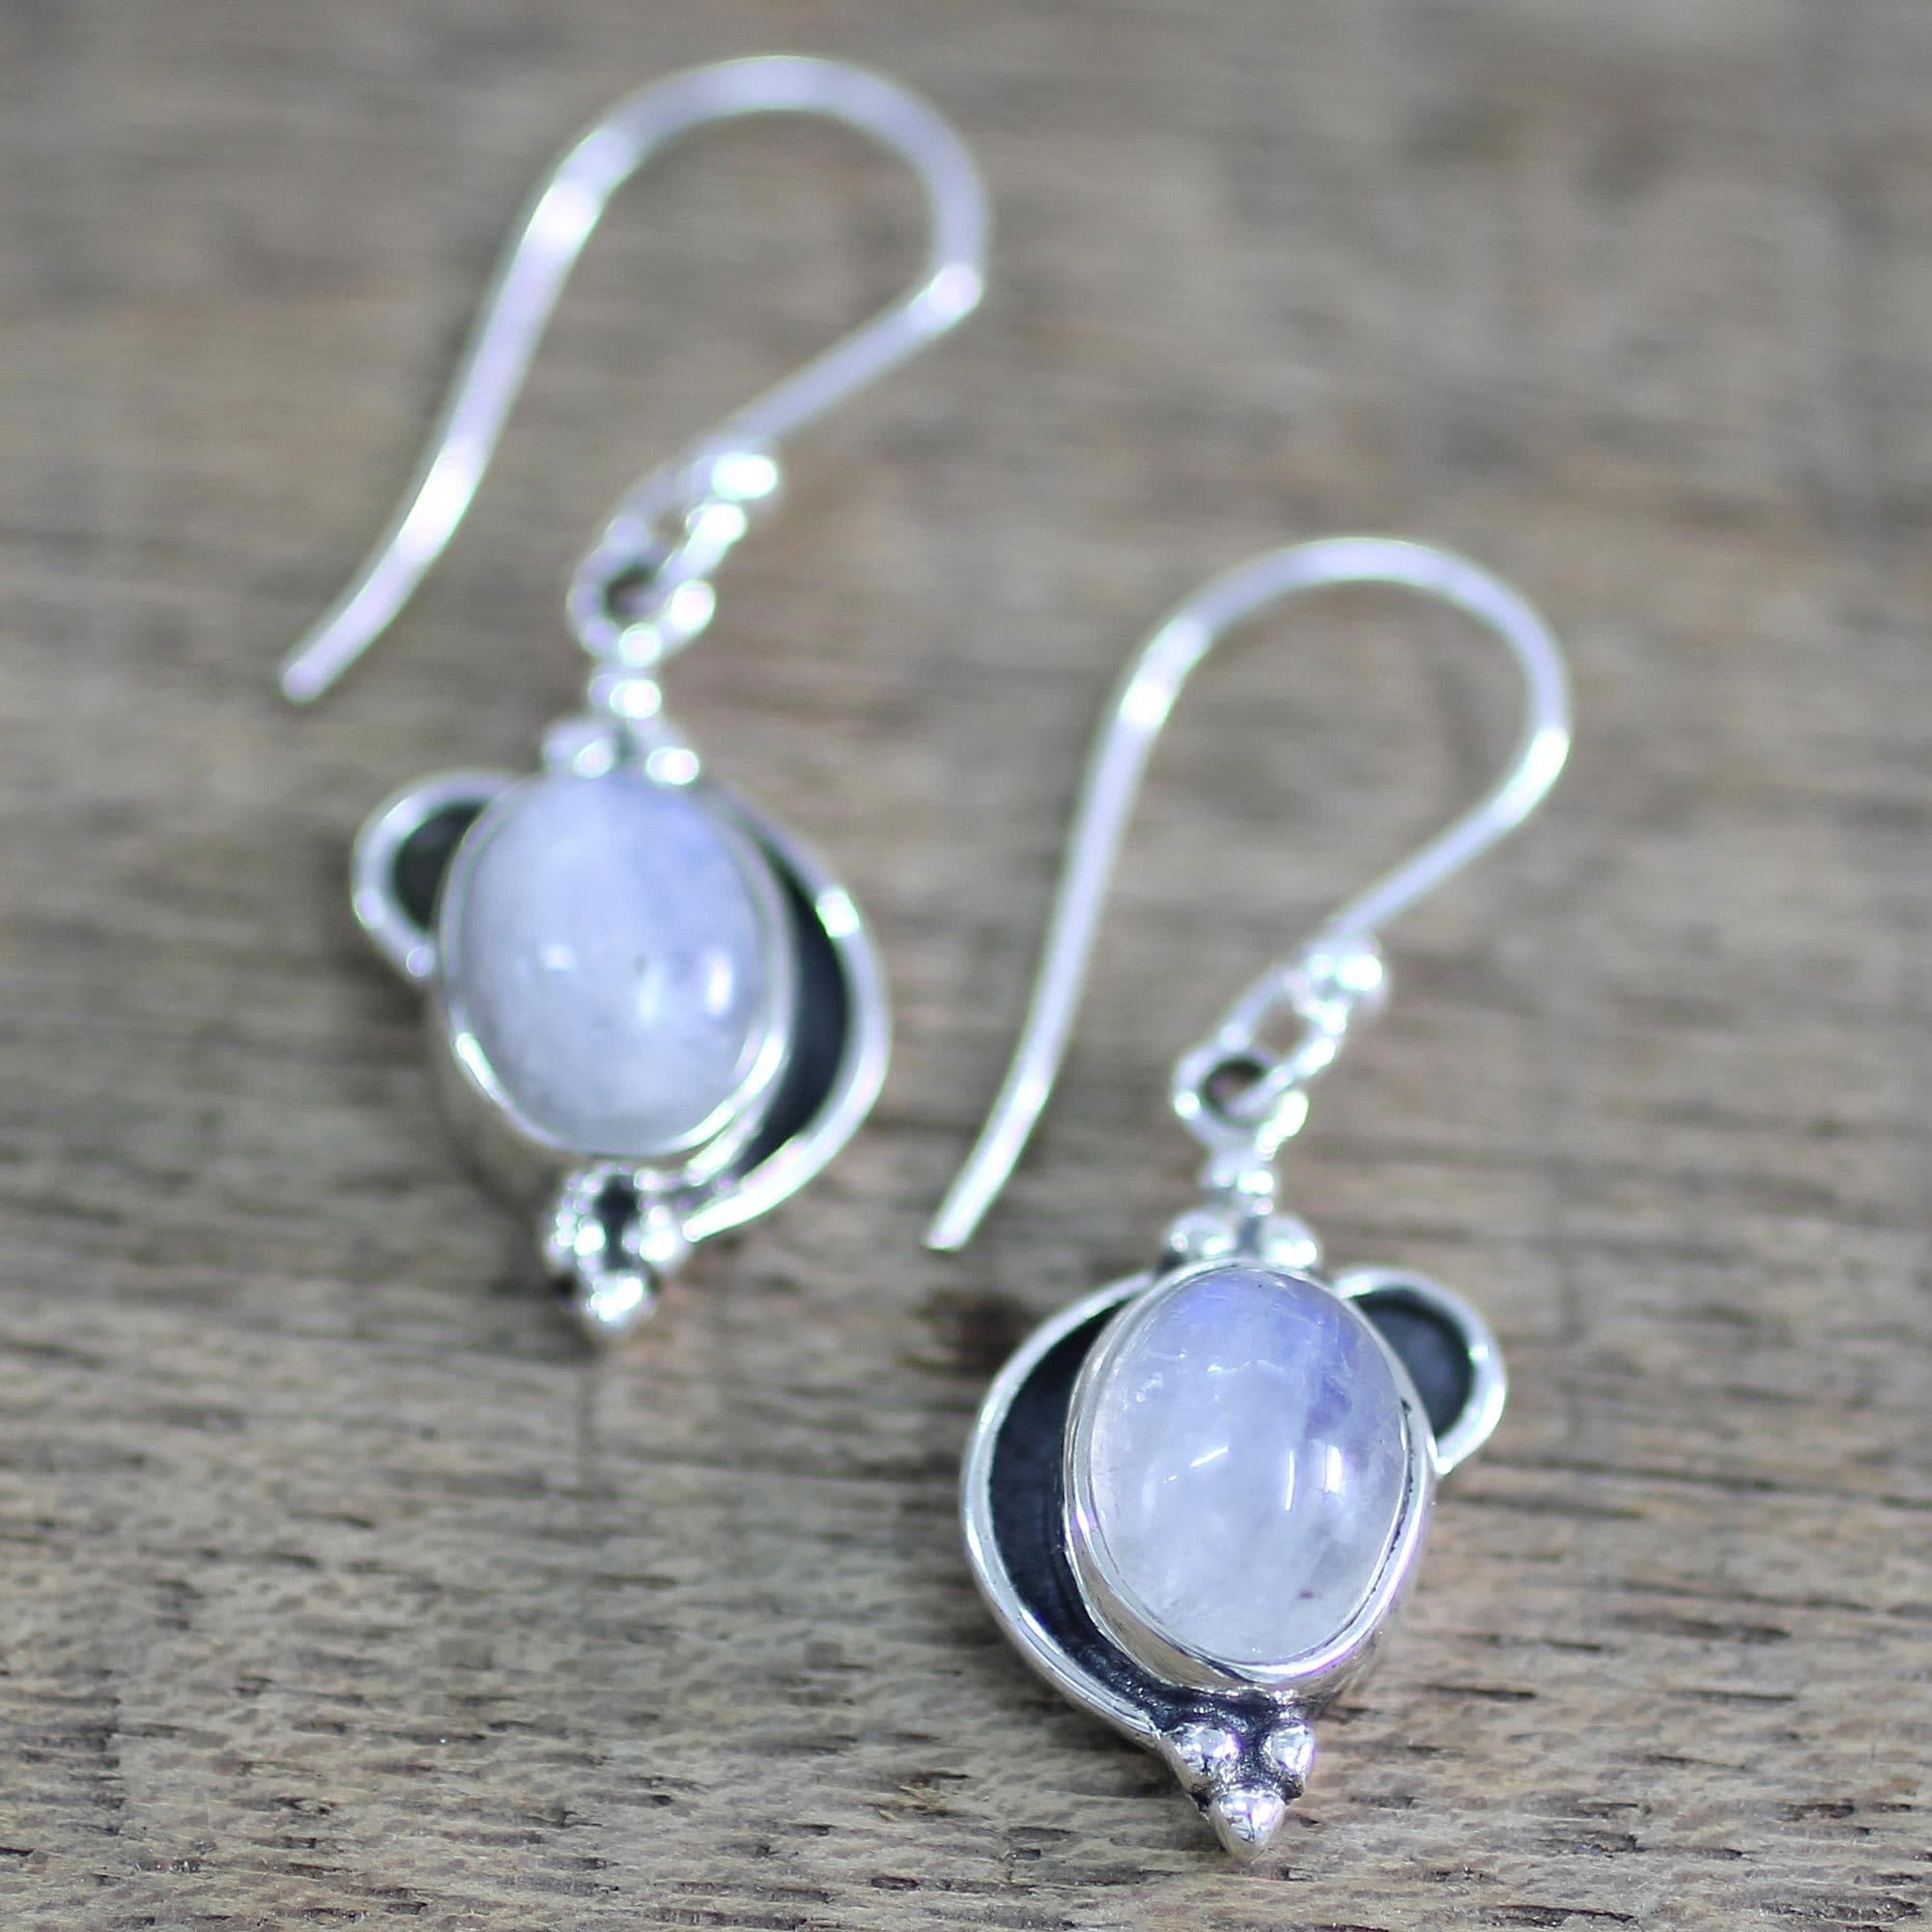 shipping moonstone product purple overstock sterling on over silver earrings rainbow jewelry watches amethyst droplets india orders handmade free